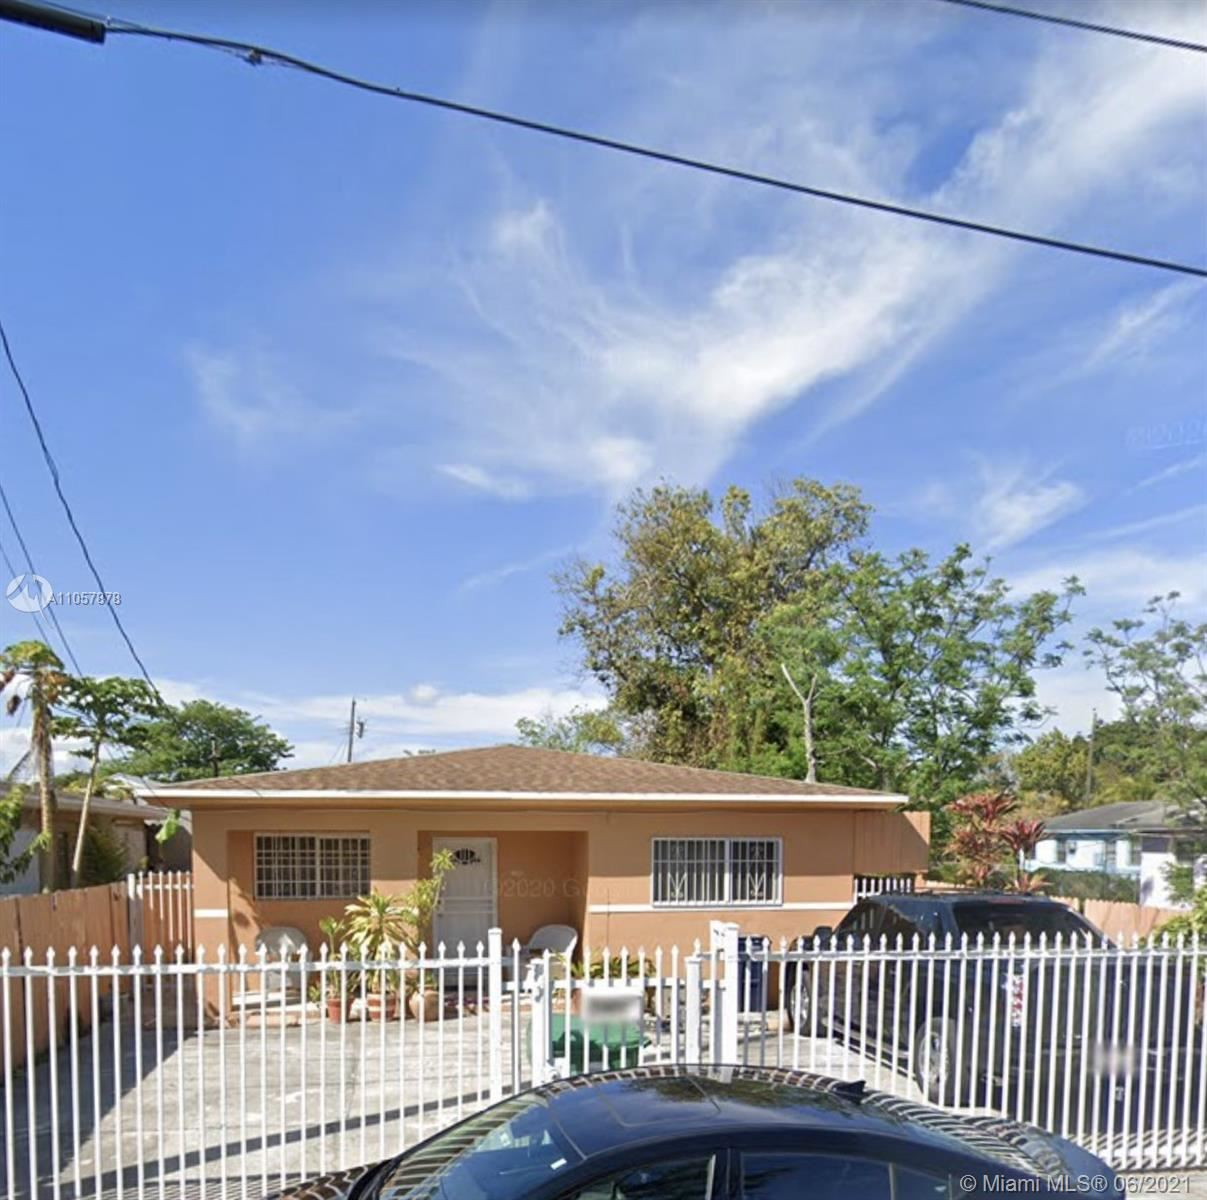 1865 NW 62nd Ter, Miami, FL 33147 - #: A11057878